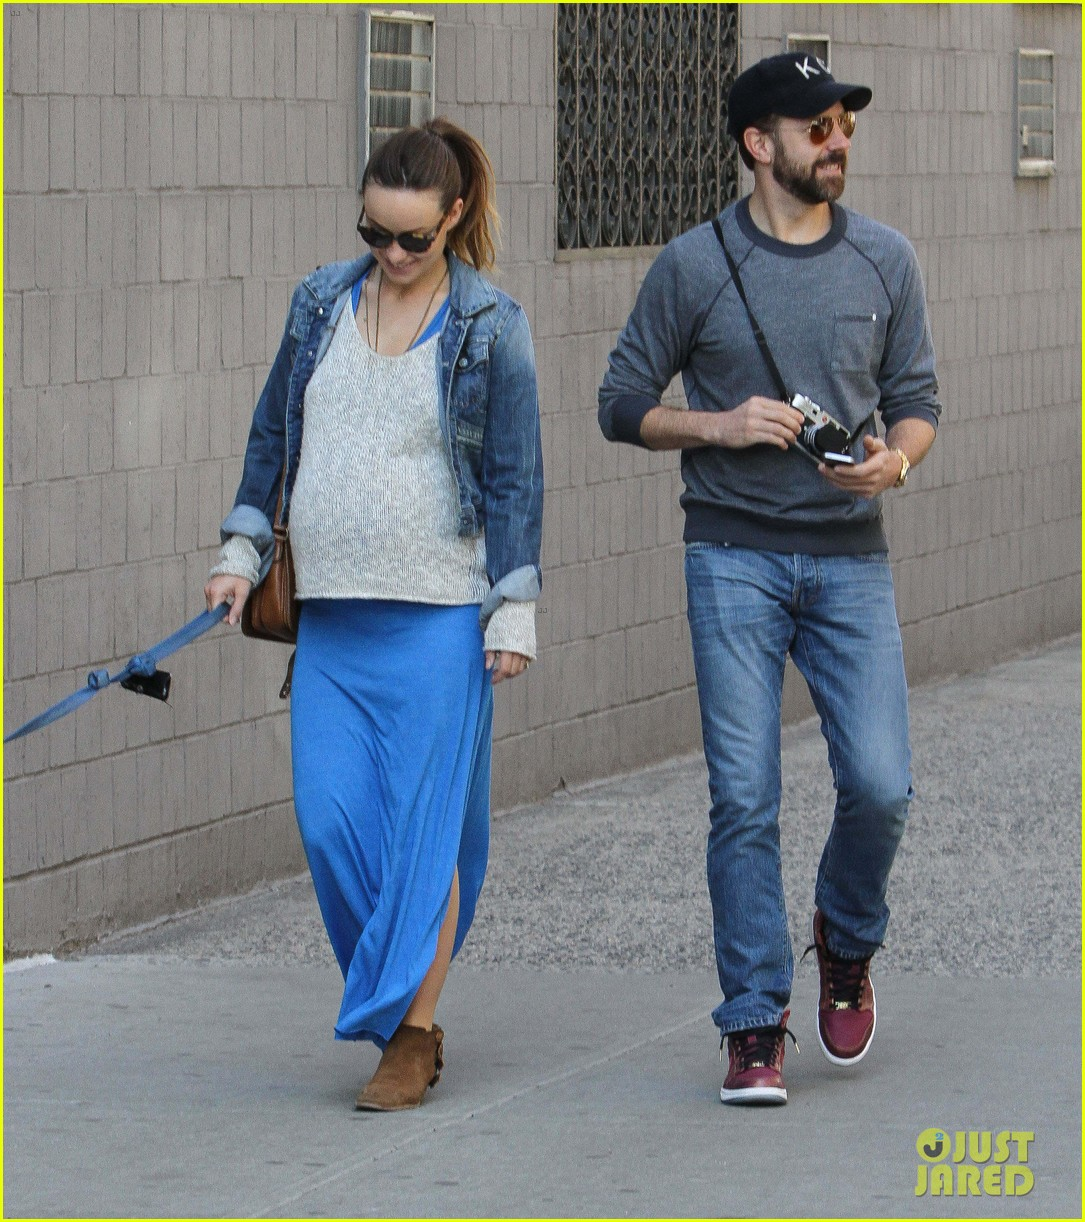 olivia wilde growing baby bump dog walk 053092179